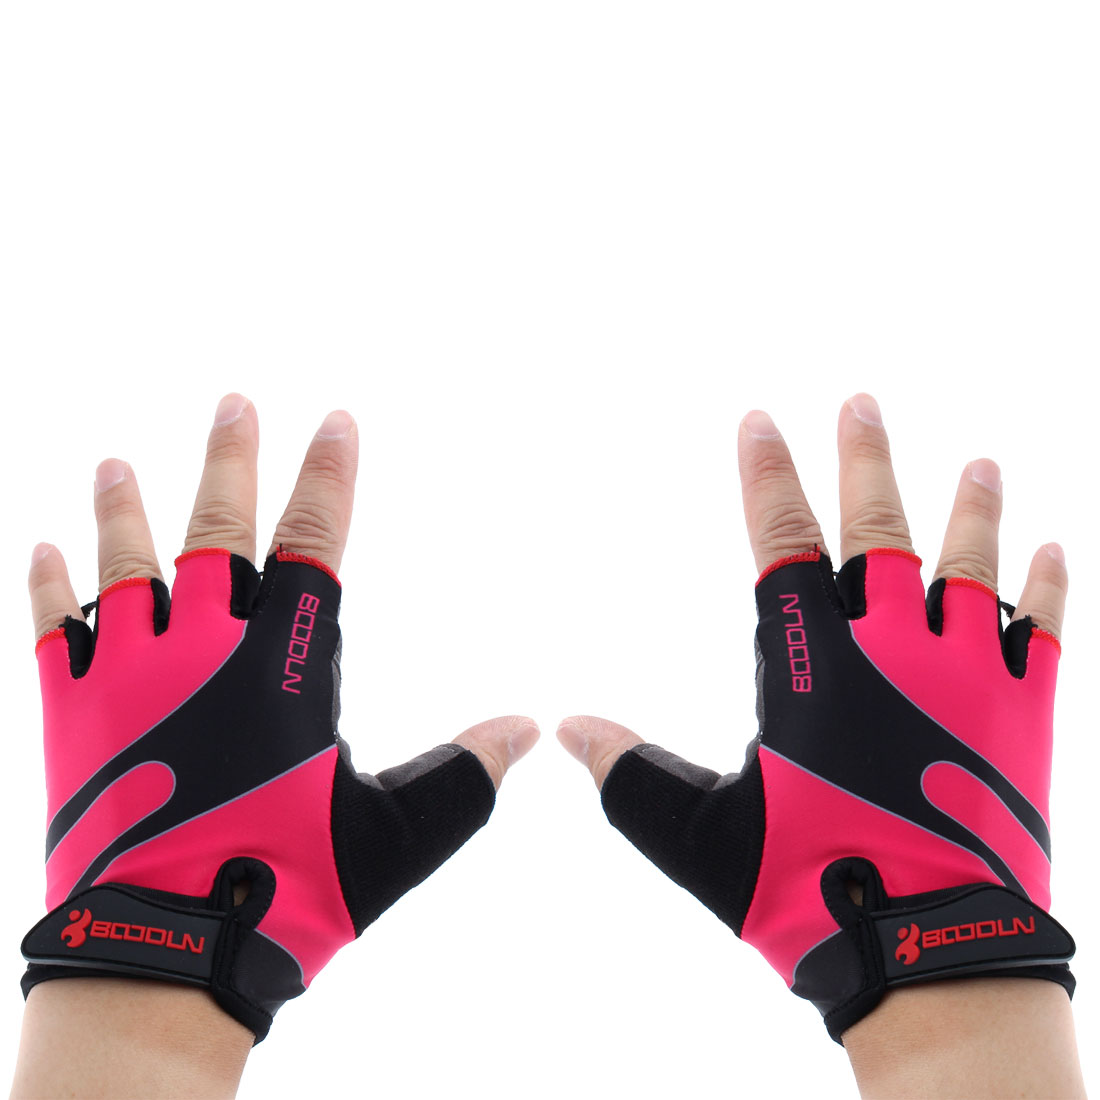 BOODUN Authorized Polyester Exercise Sports Lifting Training Bodybuilding Wrist Protector Half Finger Fitness Gloves Fuchsia XL Pair